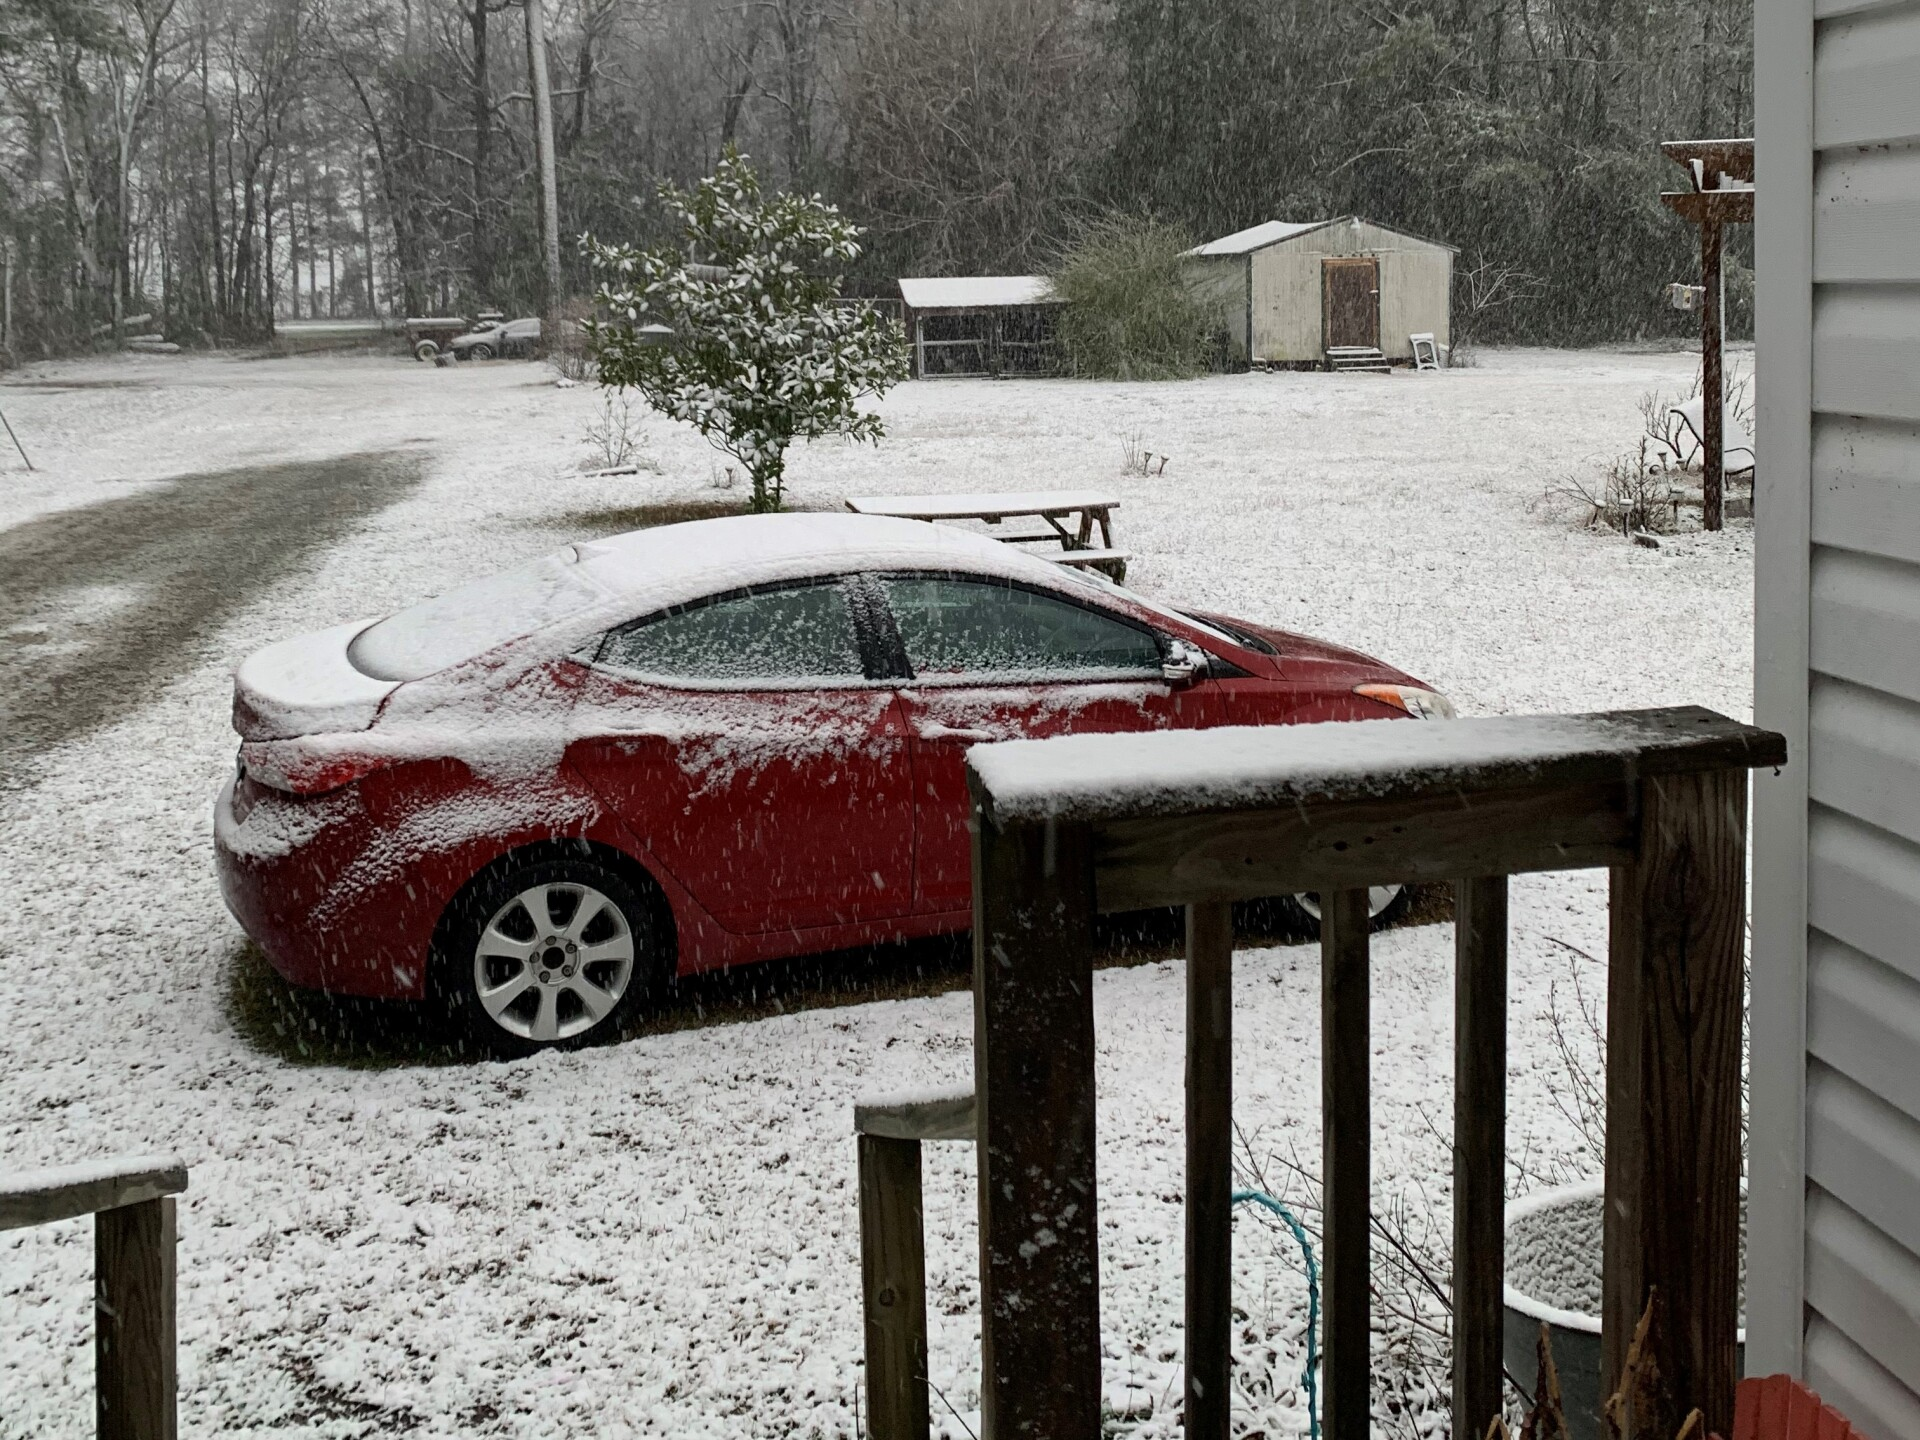 Snow In Belvidere NC from viewer Kennedy M.